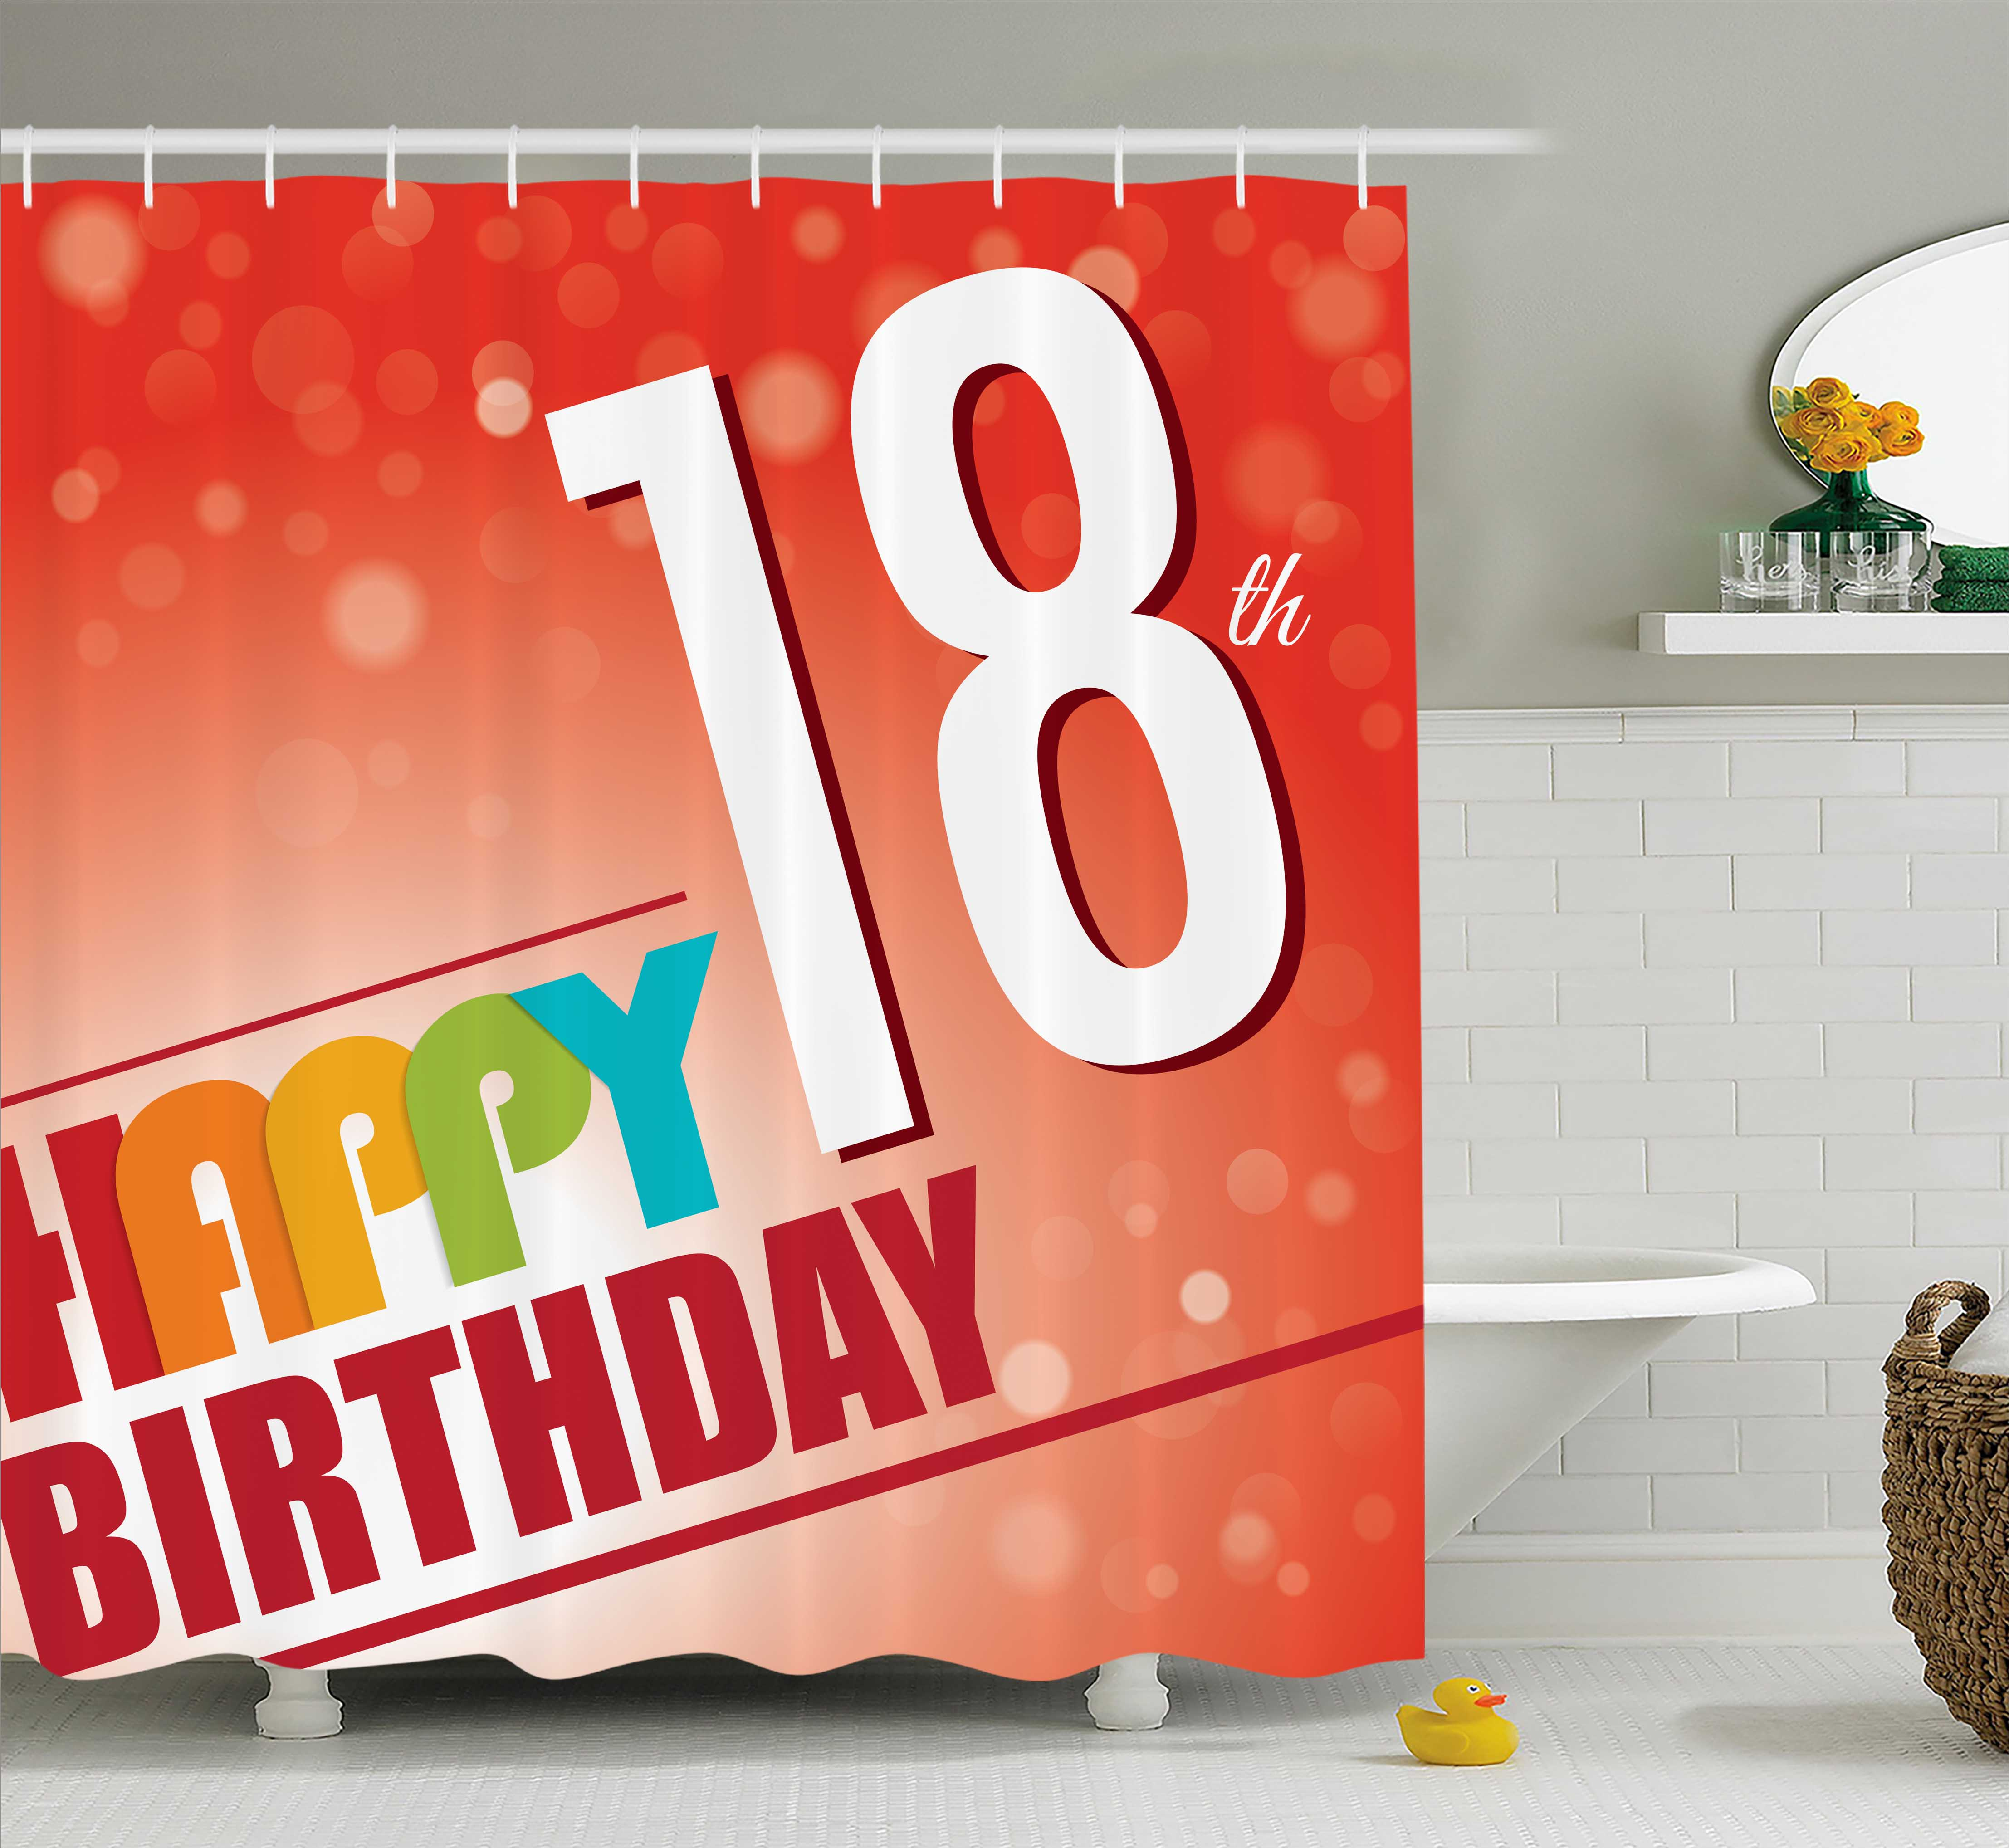 18th Birthday Shower Curtain, Abstract Sun Beams Backdrop with Colorful Birthday Party Art Print, Fabric Bathroom Set with Hooks, 69W X 75L Inches Long, Vermilion and Red, by Ambesonne